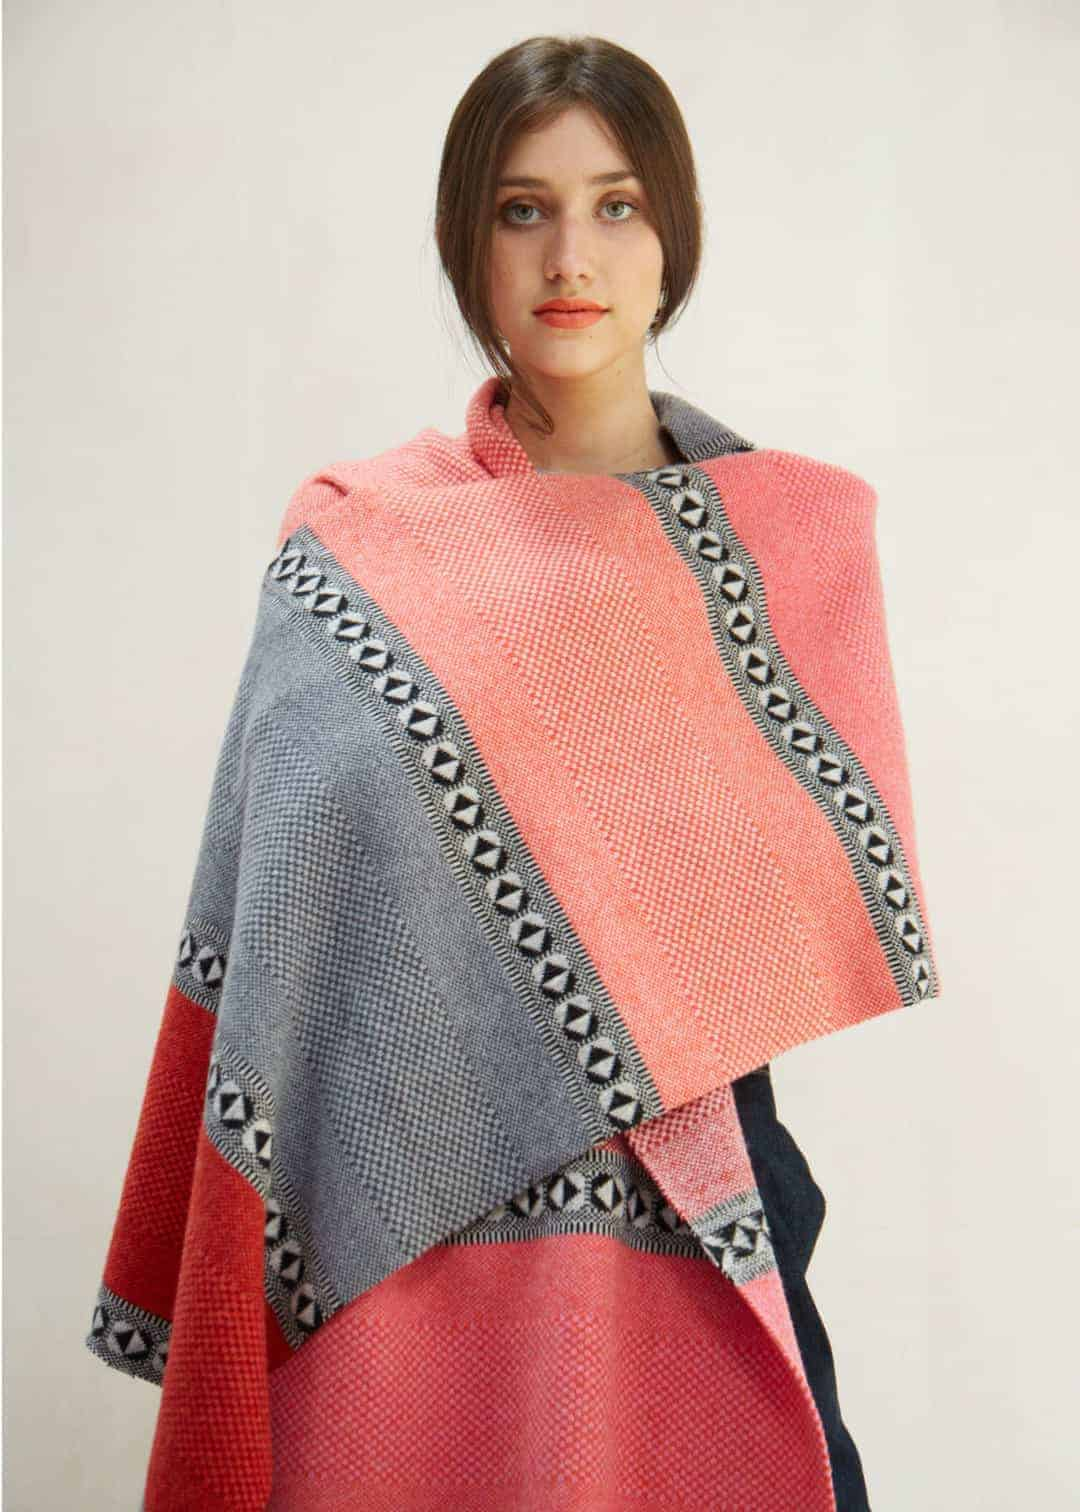 love this quinton chadwick blanket scarf made in Scotland from pure lambswool in red, grey and coral pink. Click through for more ethical gift ideas for Christmas you'll love #ShopEhicalInstead #ethicalgifts #madeinbritain #frombritainwithlove #sustainablegifts #ethicalhour #slowfashion #ethicalfashion